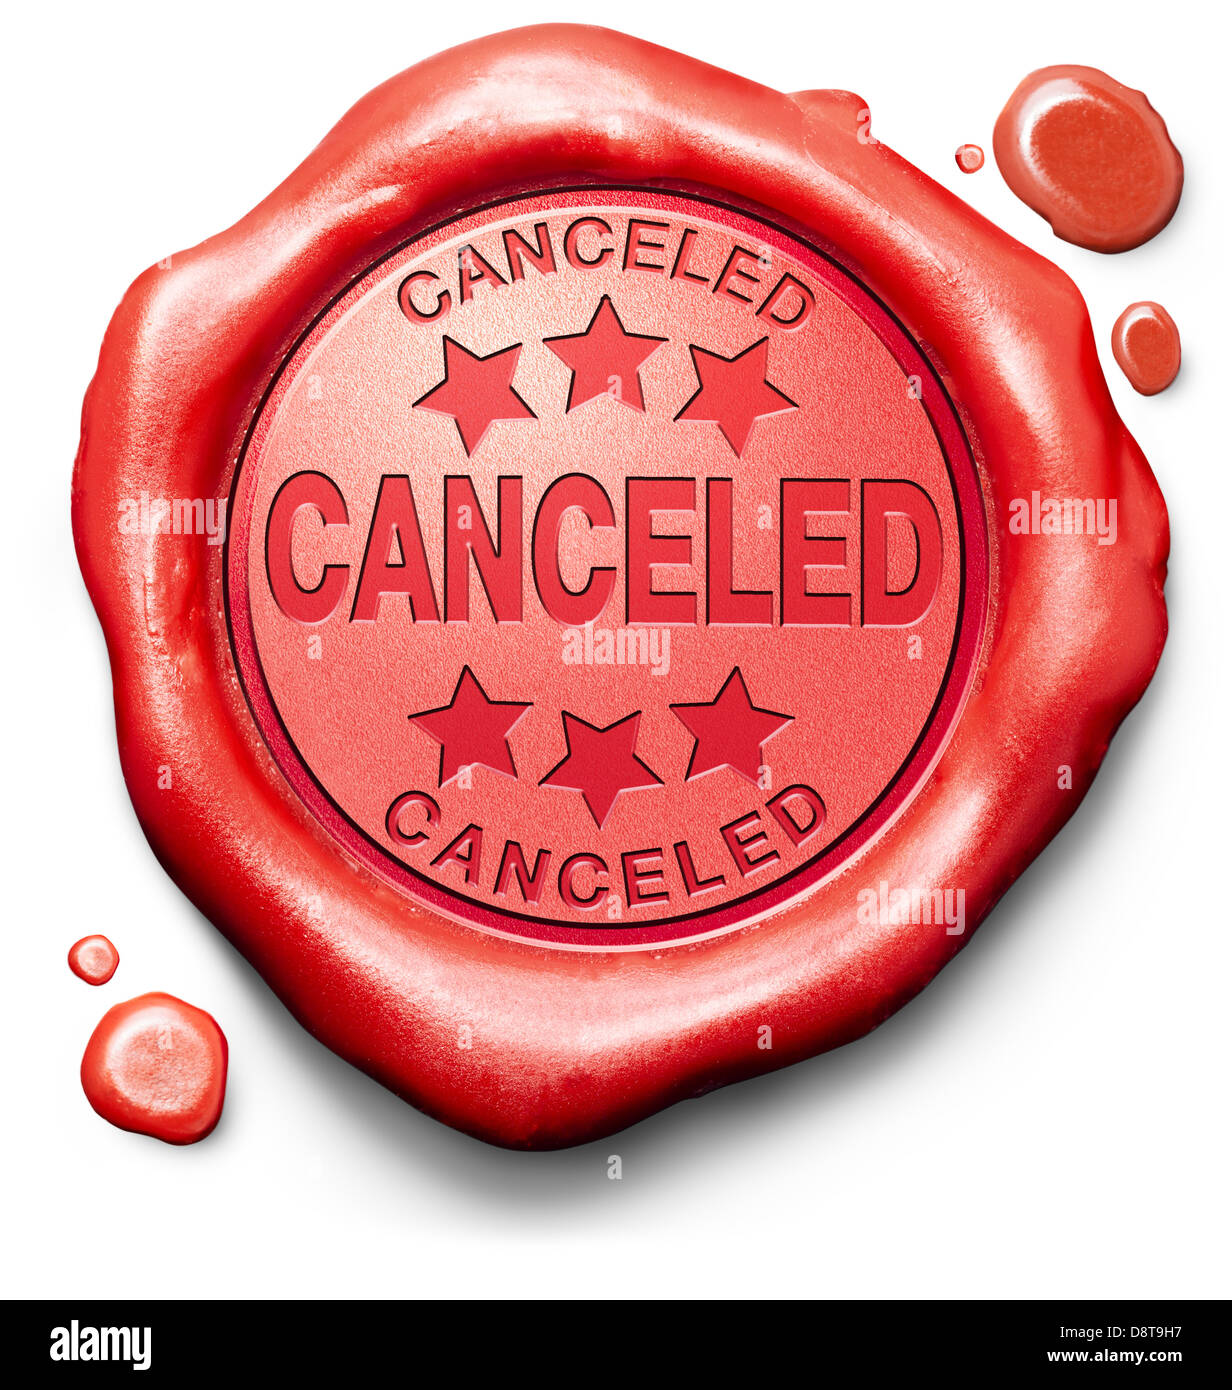 canceled cancel event appointment gig flight or vacation reservation order red label icon or stamp - Stock Image